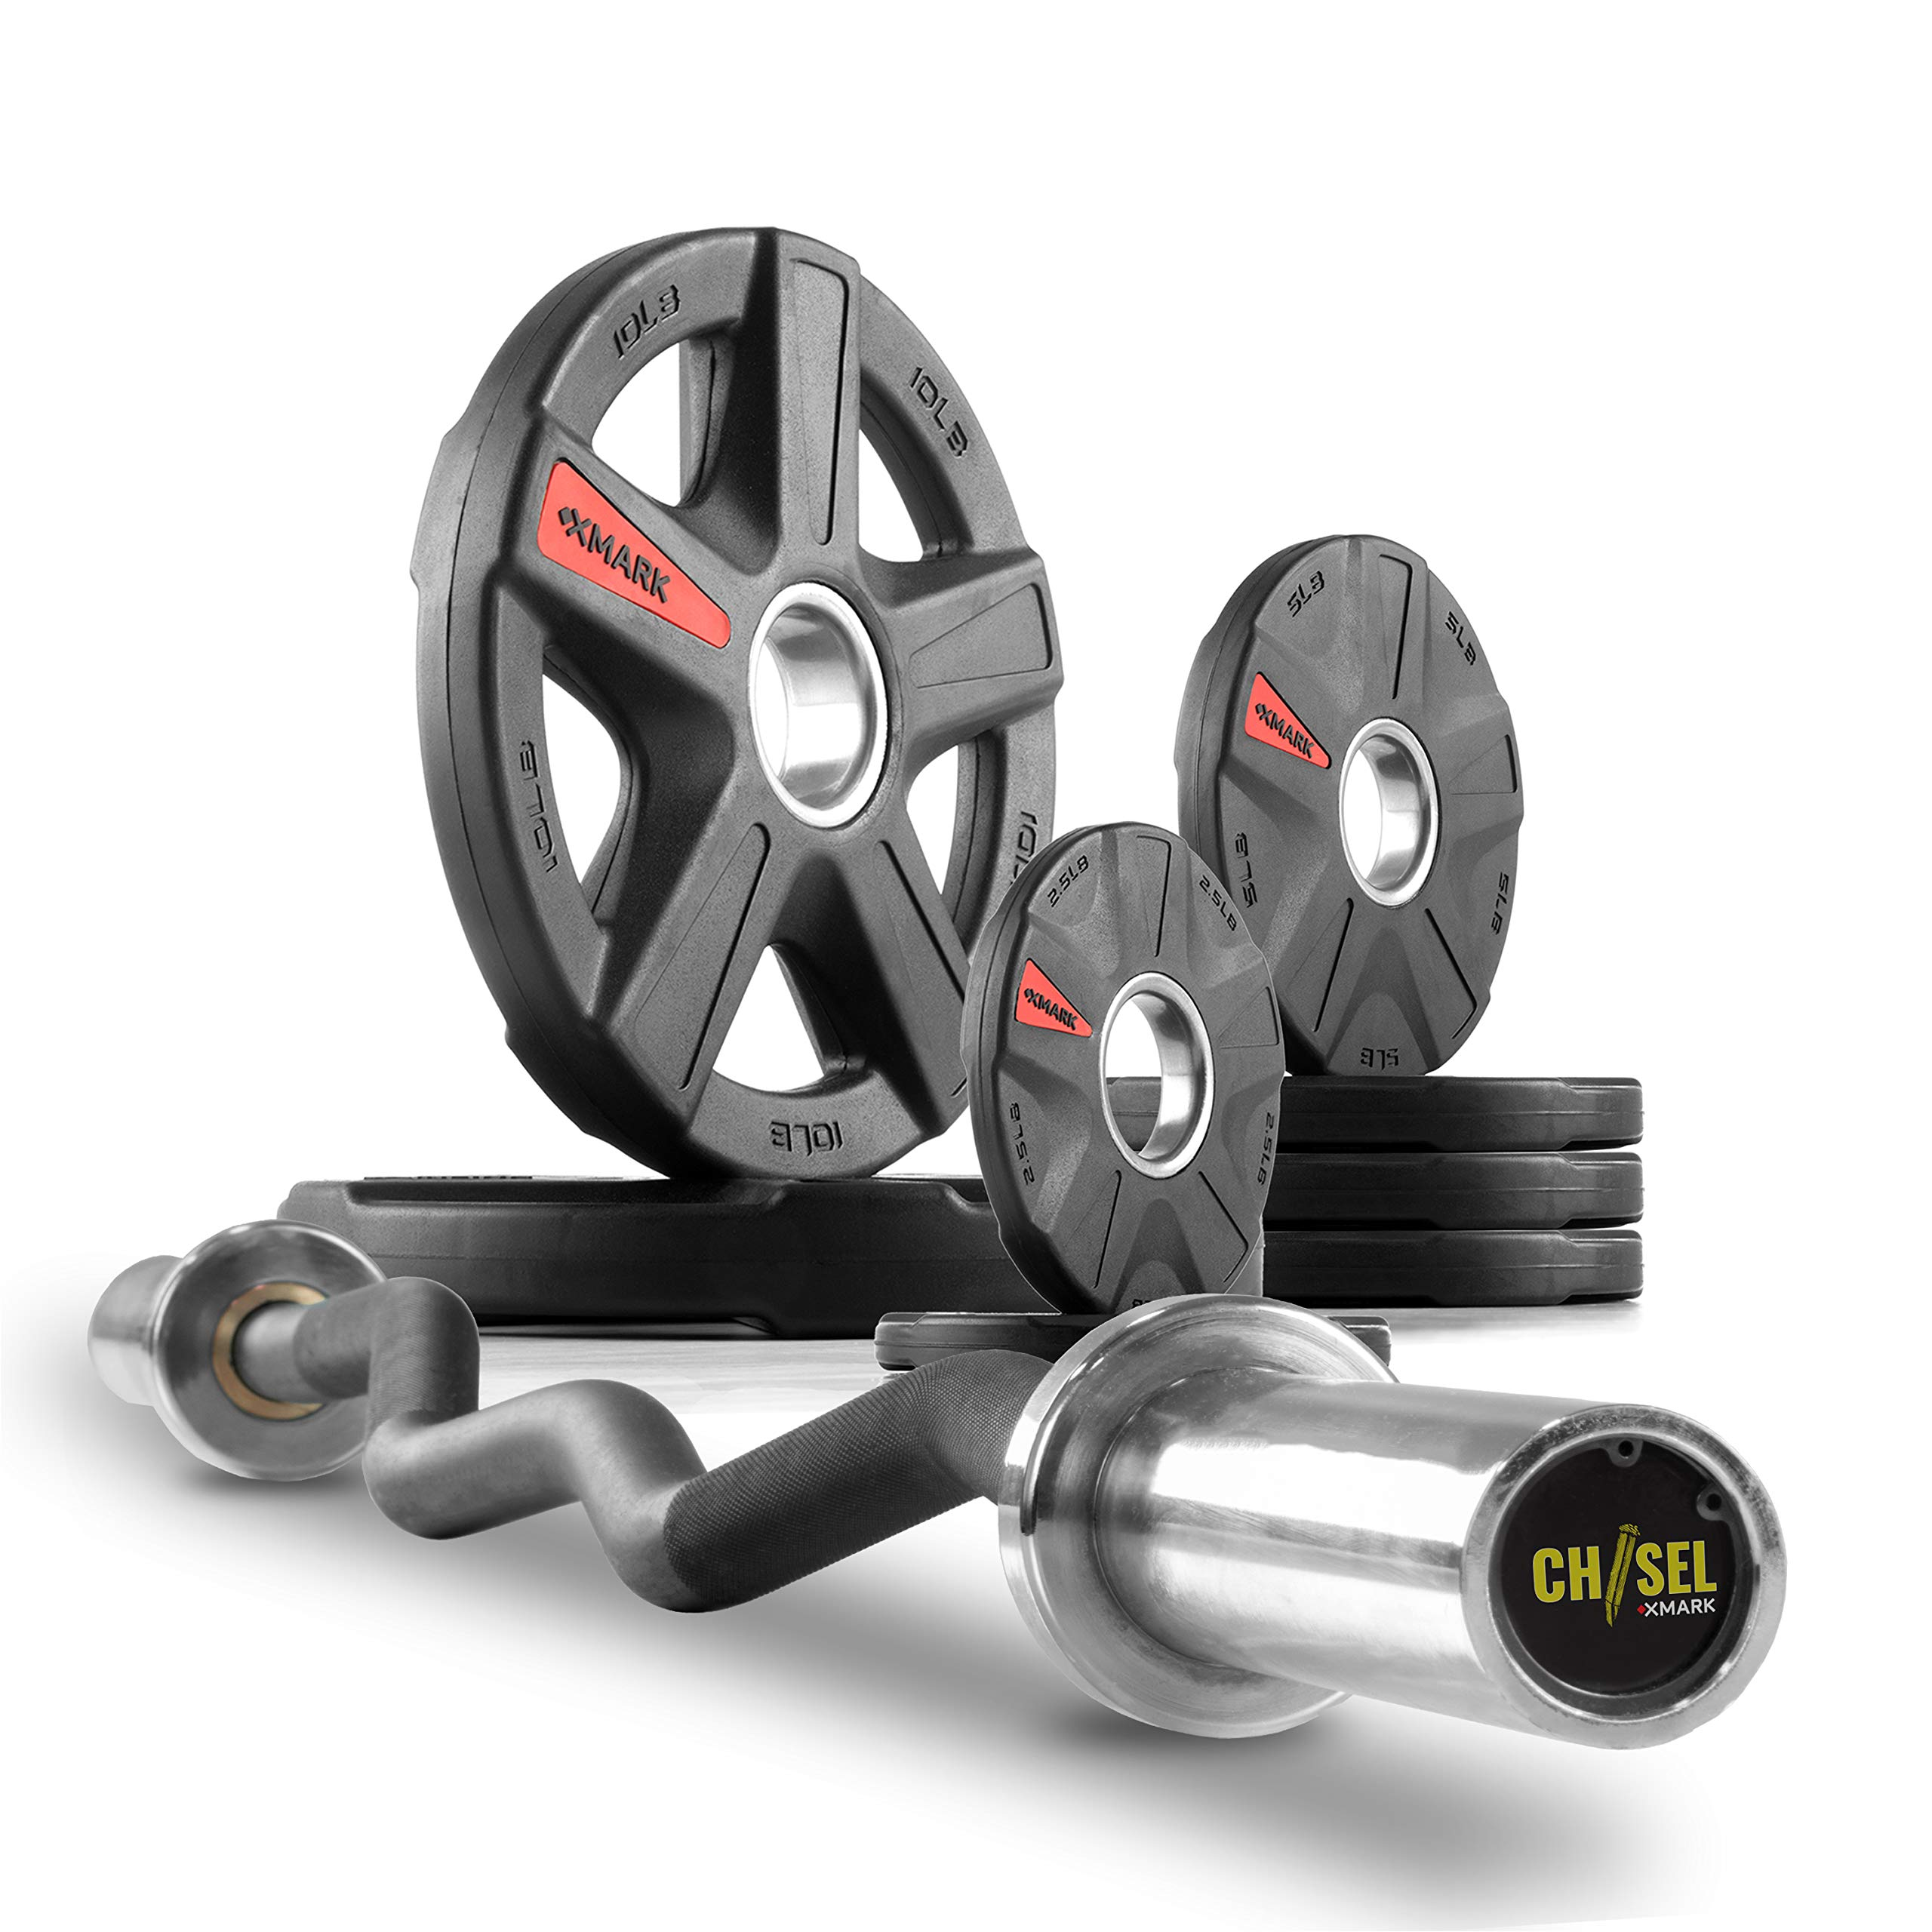 XMark Chisel Olympic Curl Bar with Texas Star 45 lb. Olympic Plate Weight Set, Notable Quality, Impressive Design, and Impeccable Craftsmanship by XMark Fitness